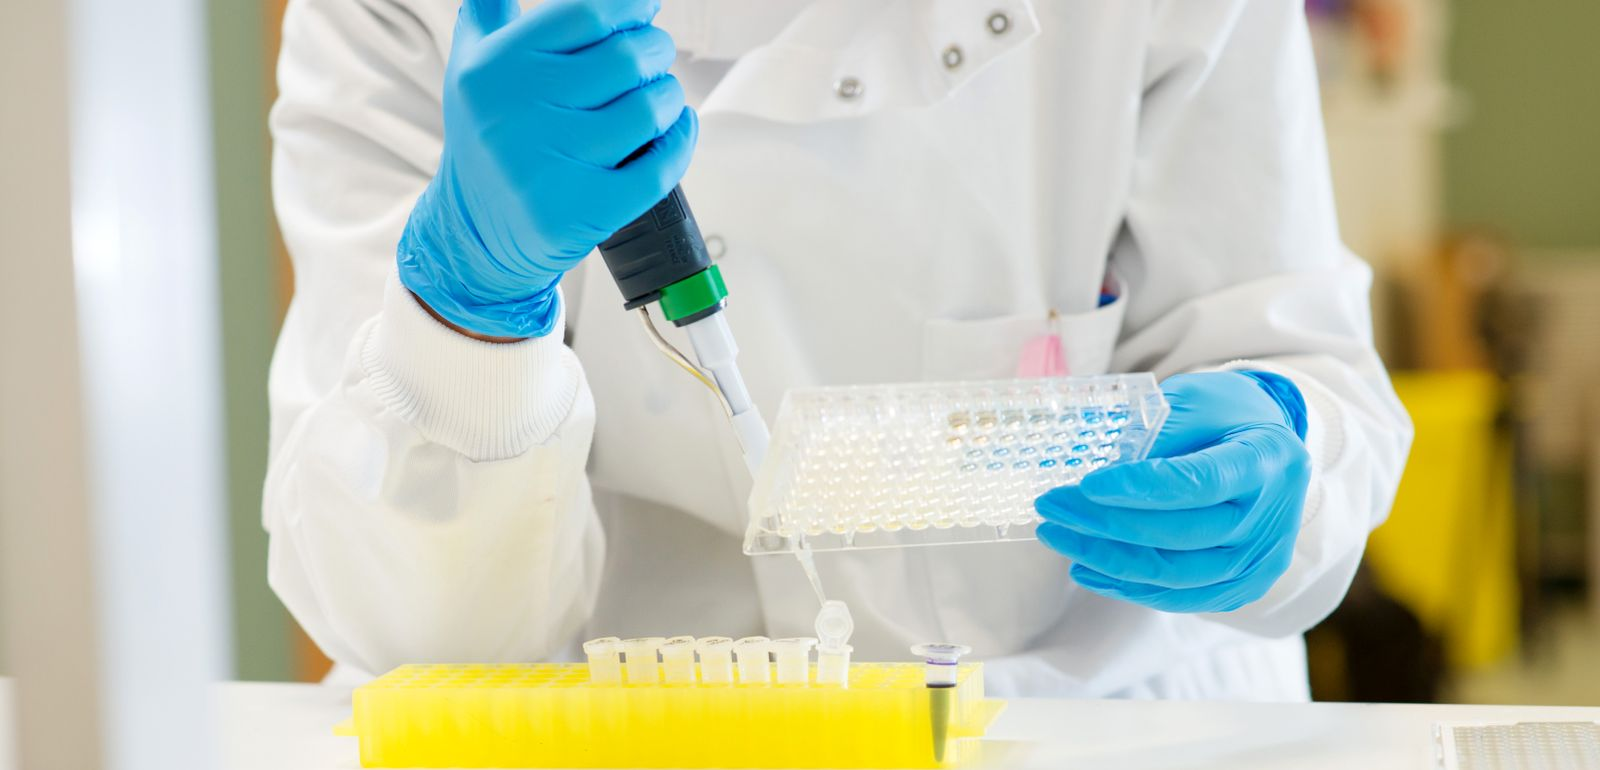 News | MEN WITH PROSTATE CANCER COULD BENEFIT FROM NEW ...